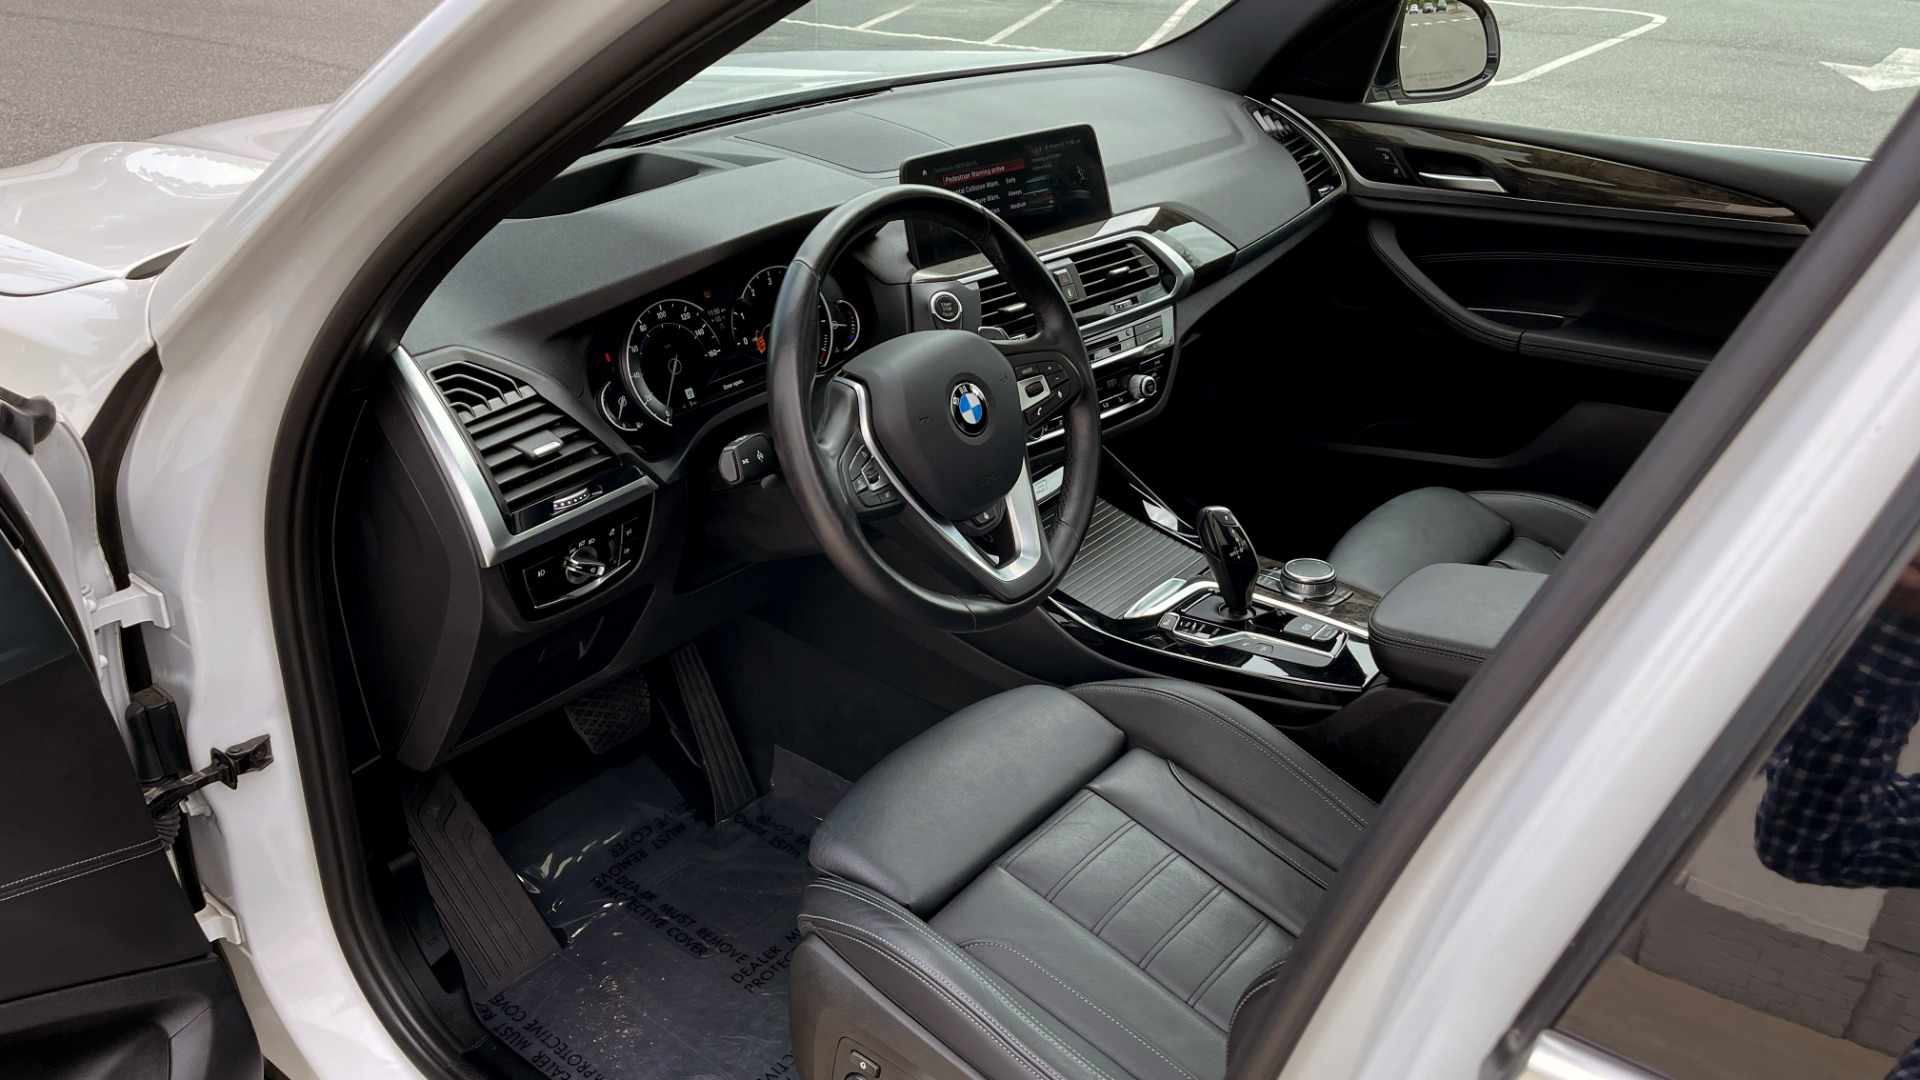 Used 2018 BMW X3 XDRIVE30I PREMIUM / NAV / DRVR ASST / CONV PKG / SUNROOF / REARVIEW for sale $32,695 at Formula Imports in Charlotte NC 28227 58